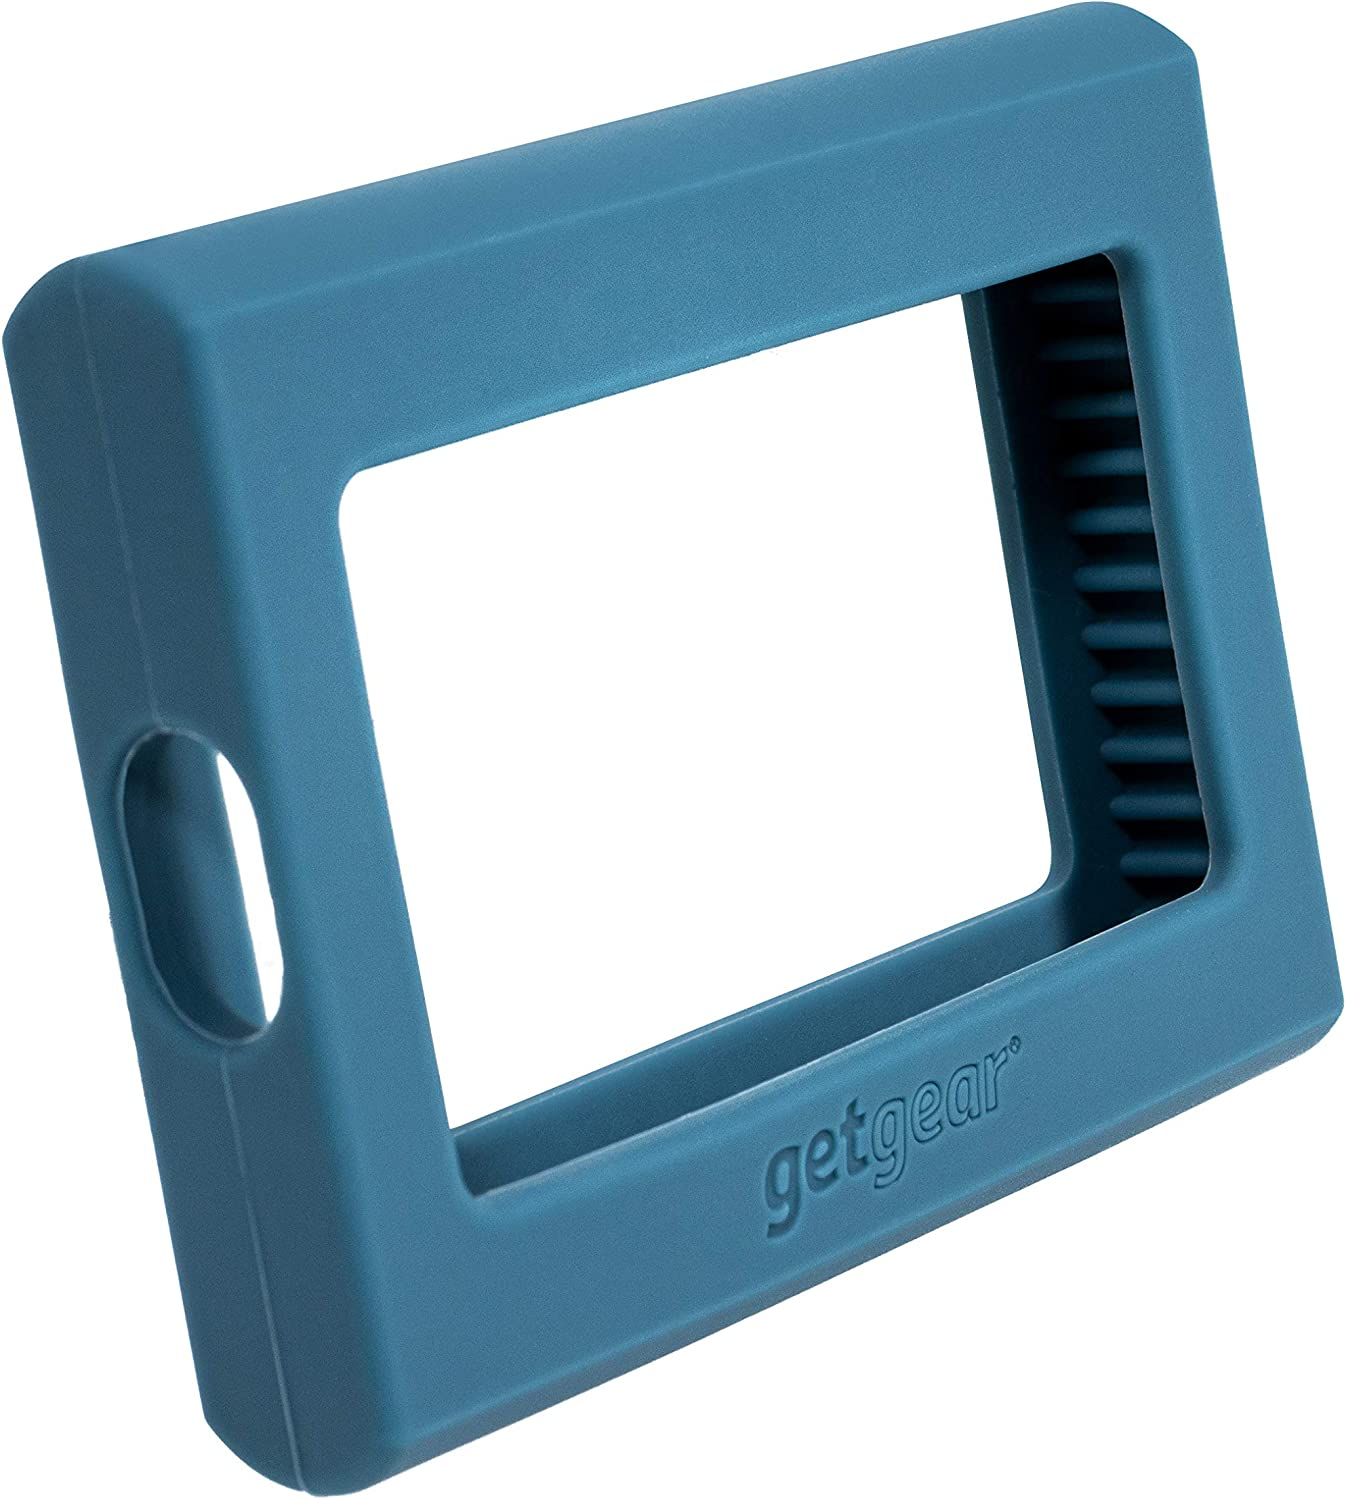 Slip-Resistant Blue Strong-Shock Absorbing getgear Silicone Bumper for Samsung Portable SSD T5